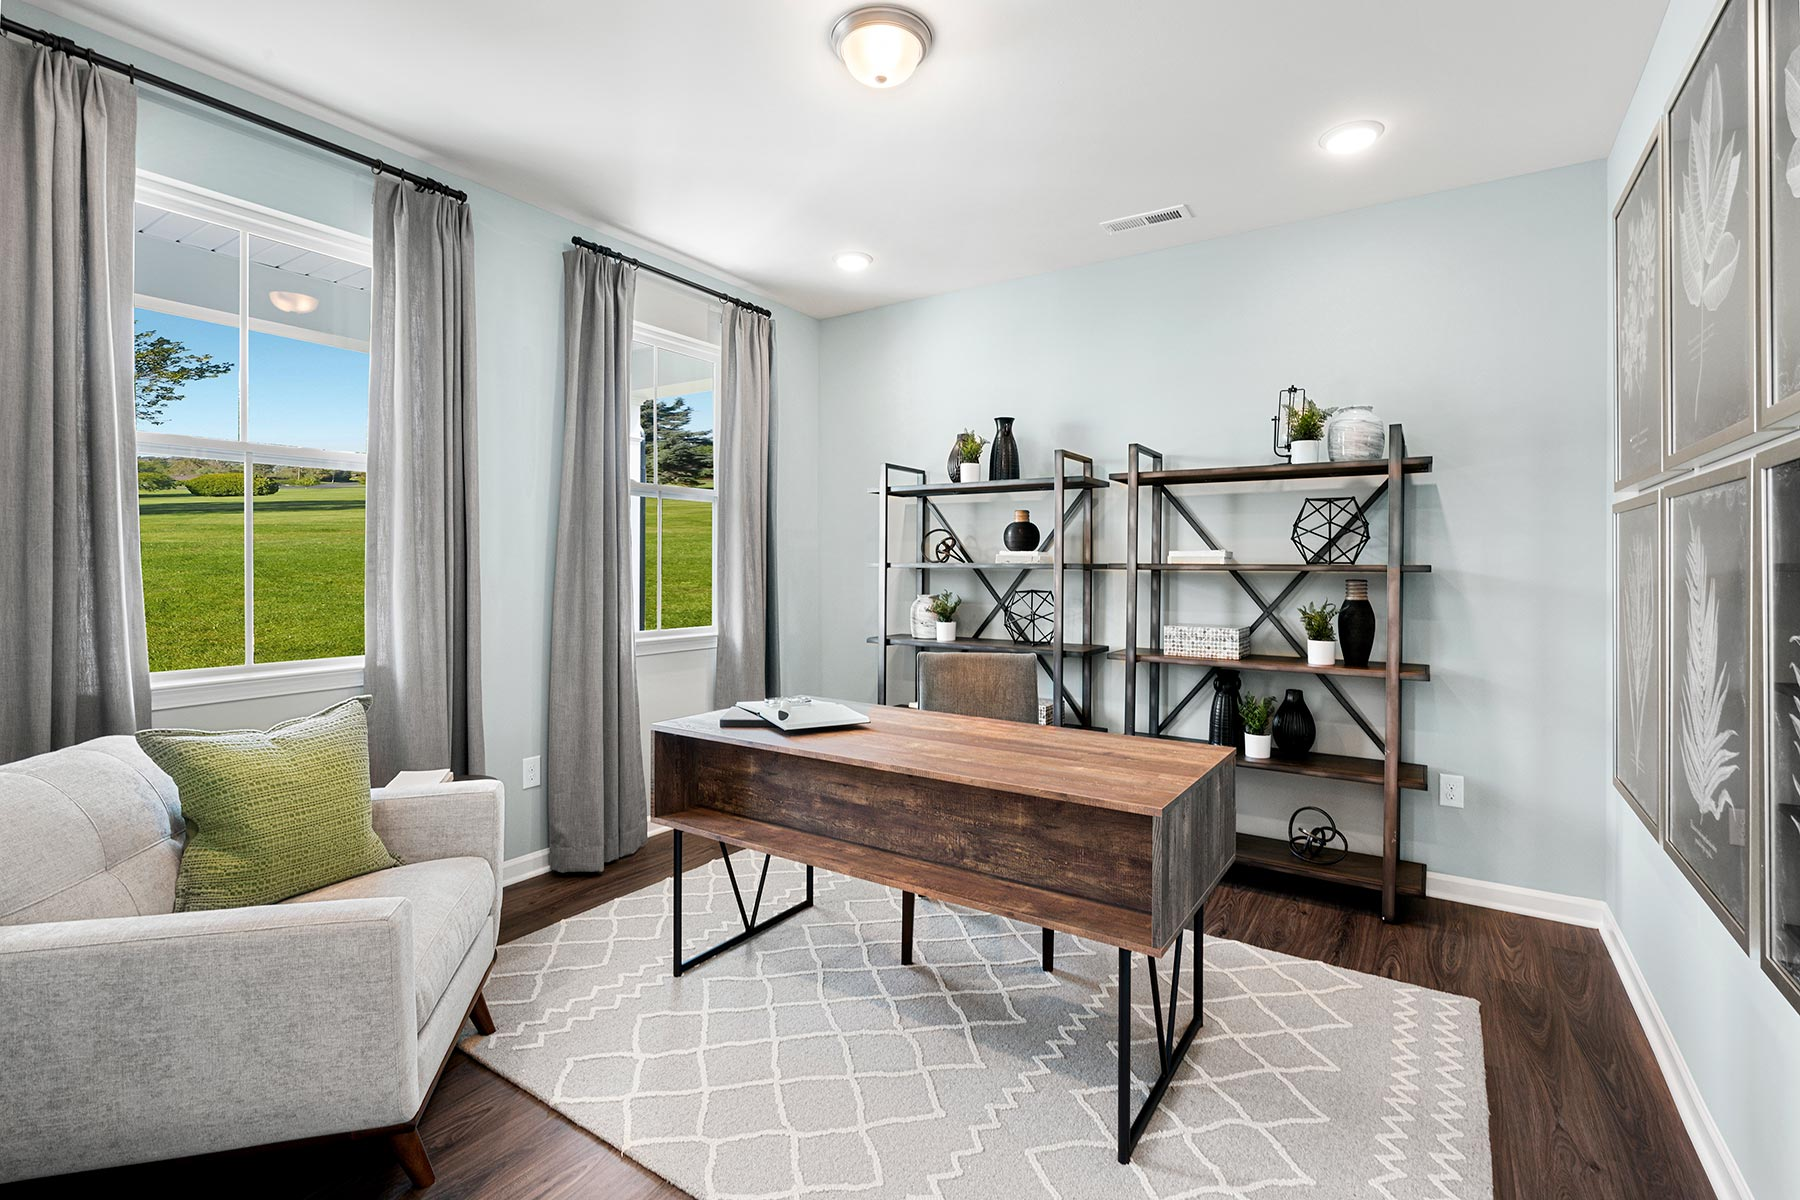 Gaines Plan Study Room at Bedford at Flowers Plantation in Clayton North Carolina by Mattamy Homes